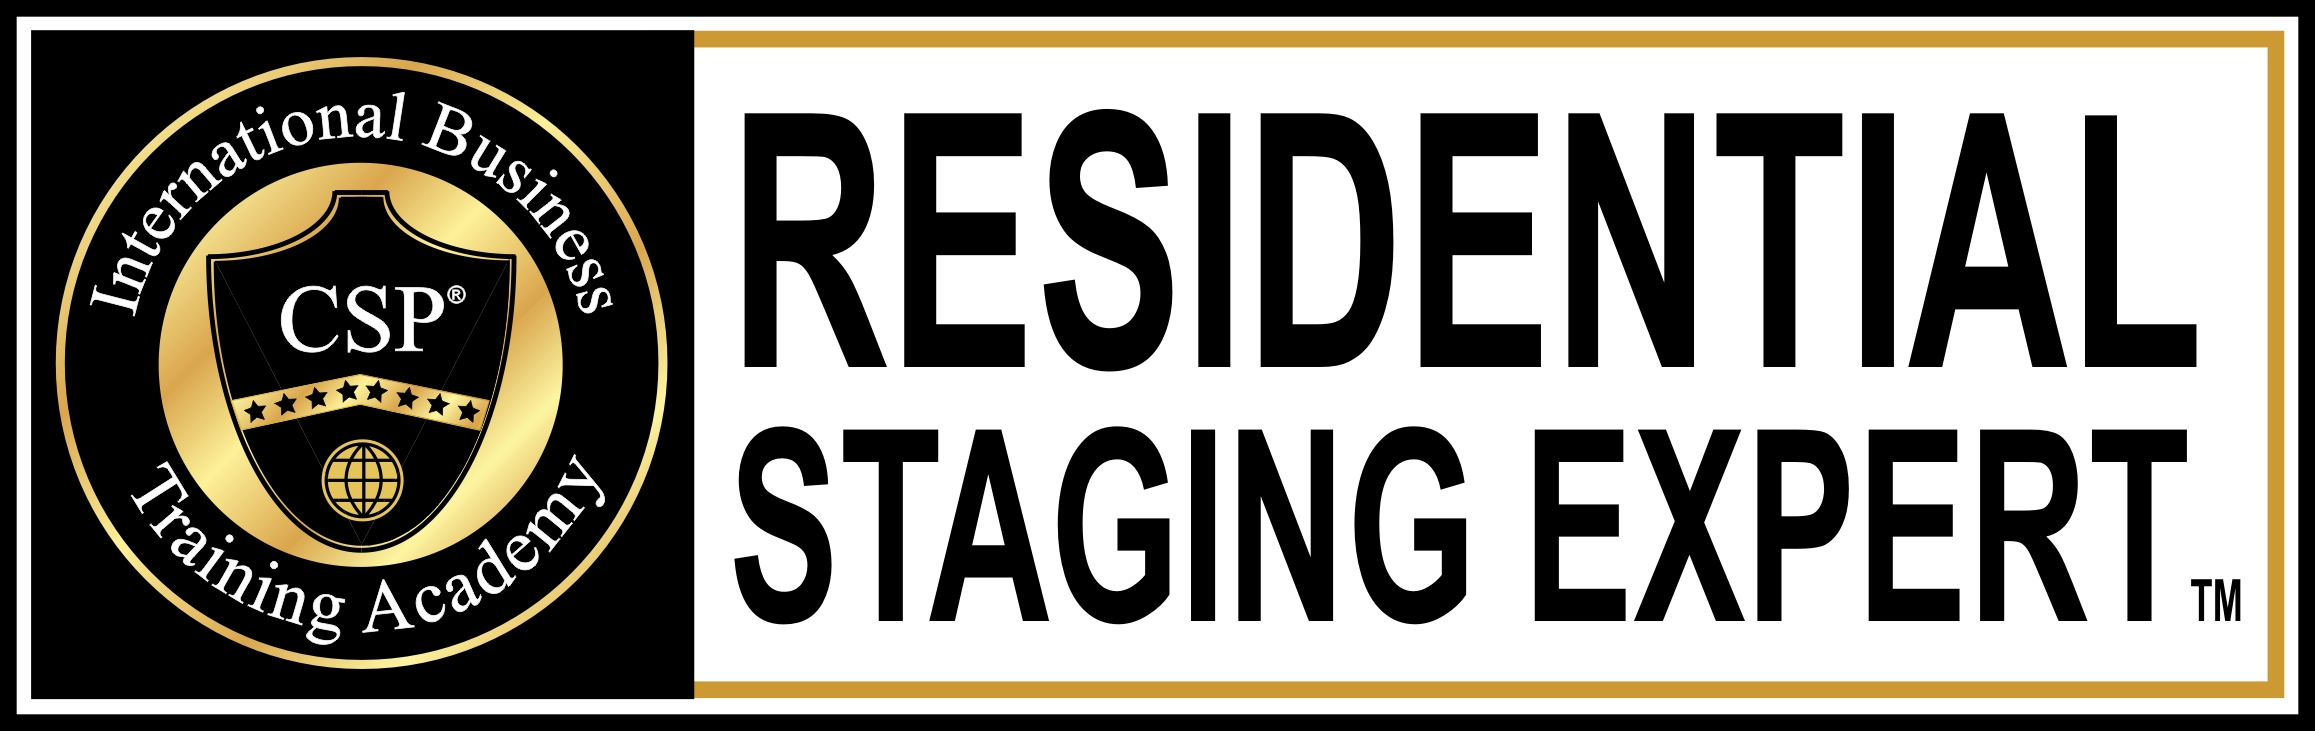 CSP-residential-staging-expert-banner (1)